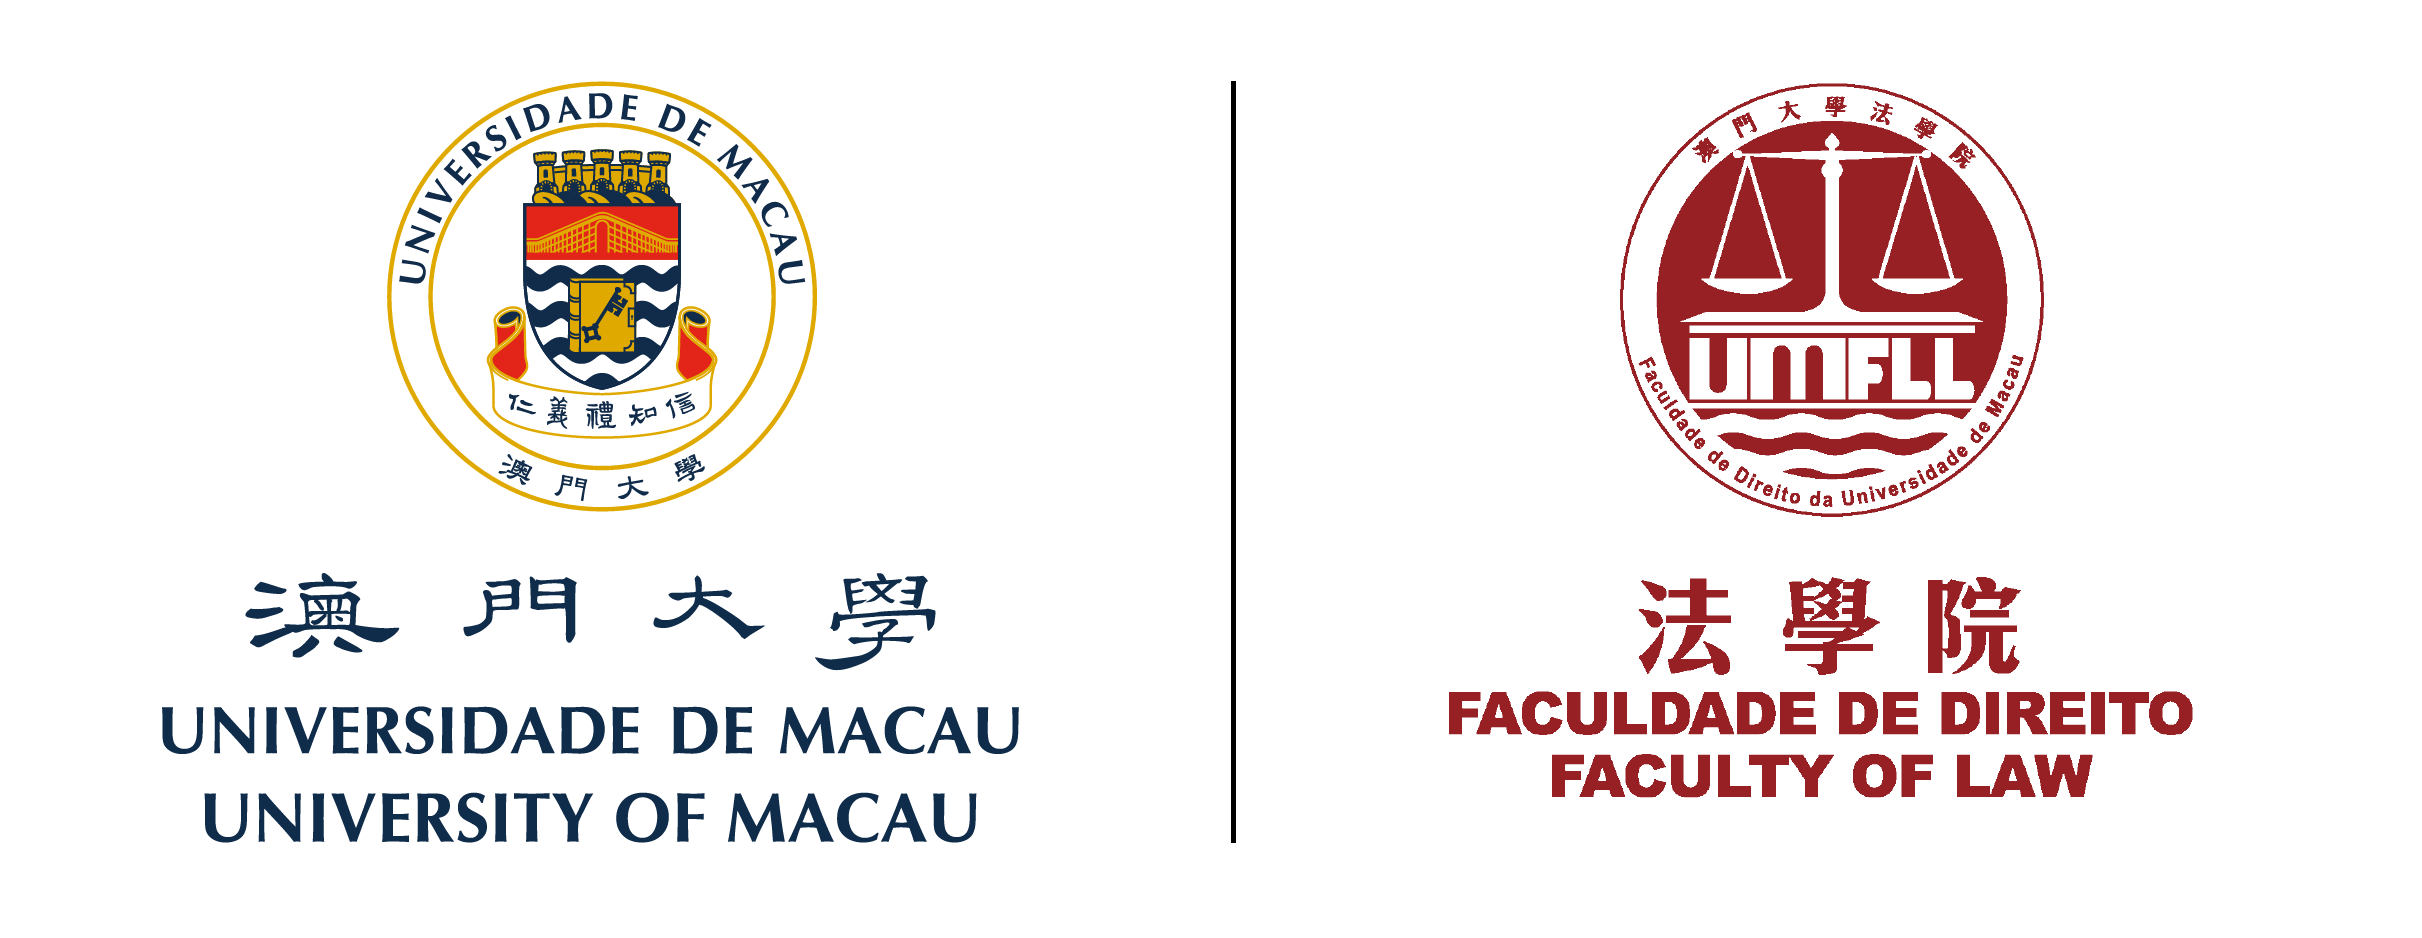 Faculty of Law | University of Macau Logo